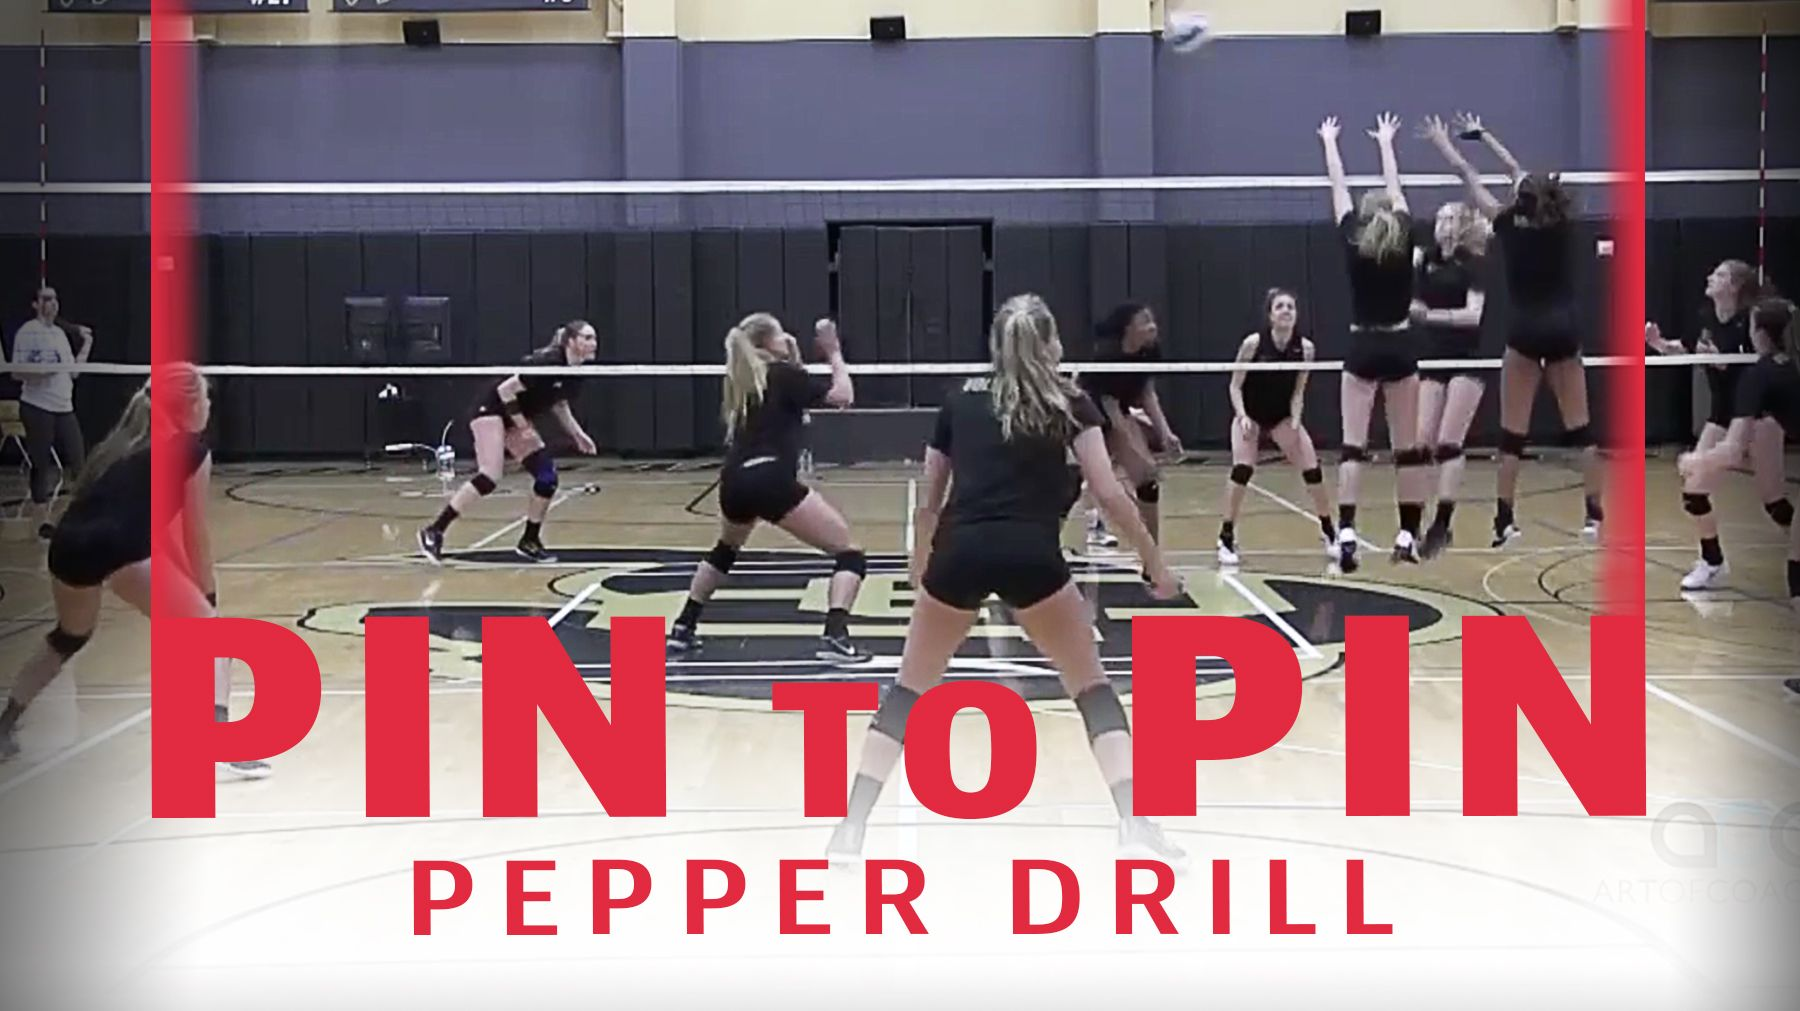 Pin To Pin Pepper Drill Coaching Volleyball Drill Volleyball Drills